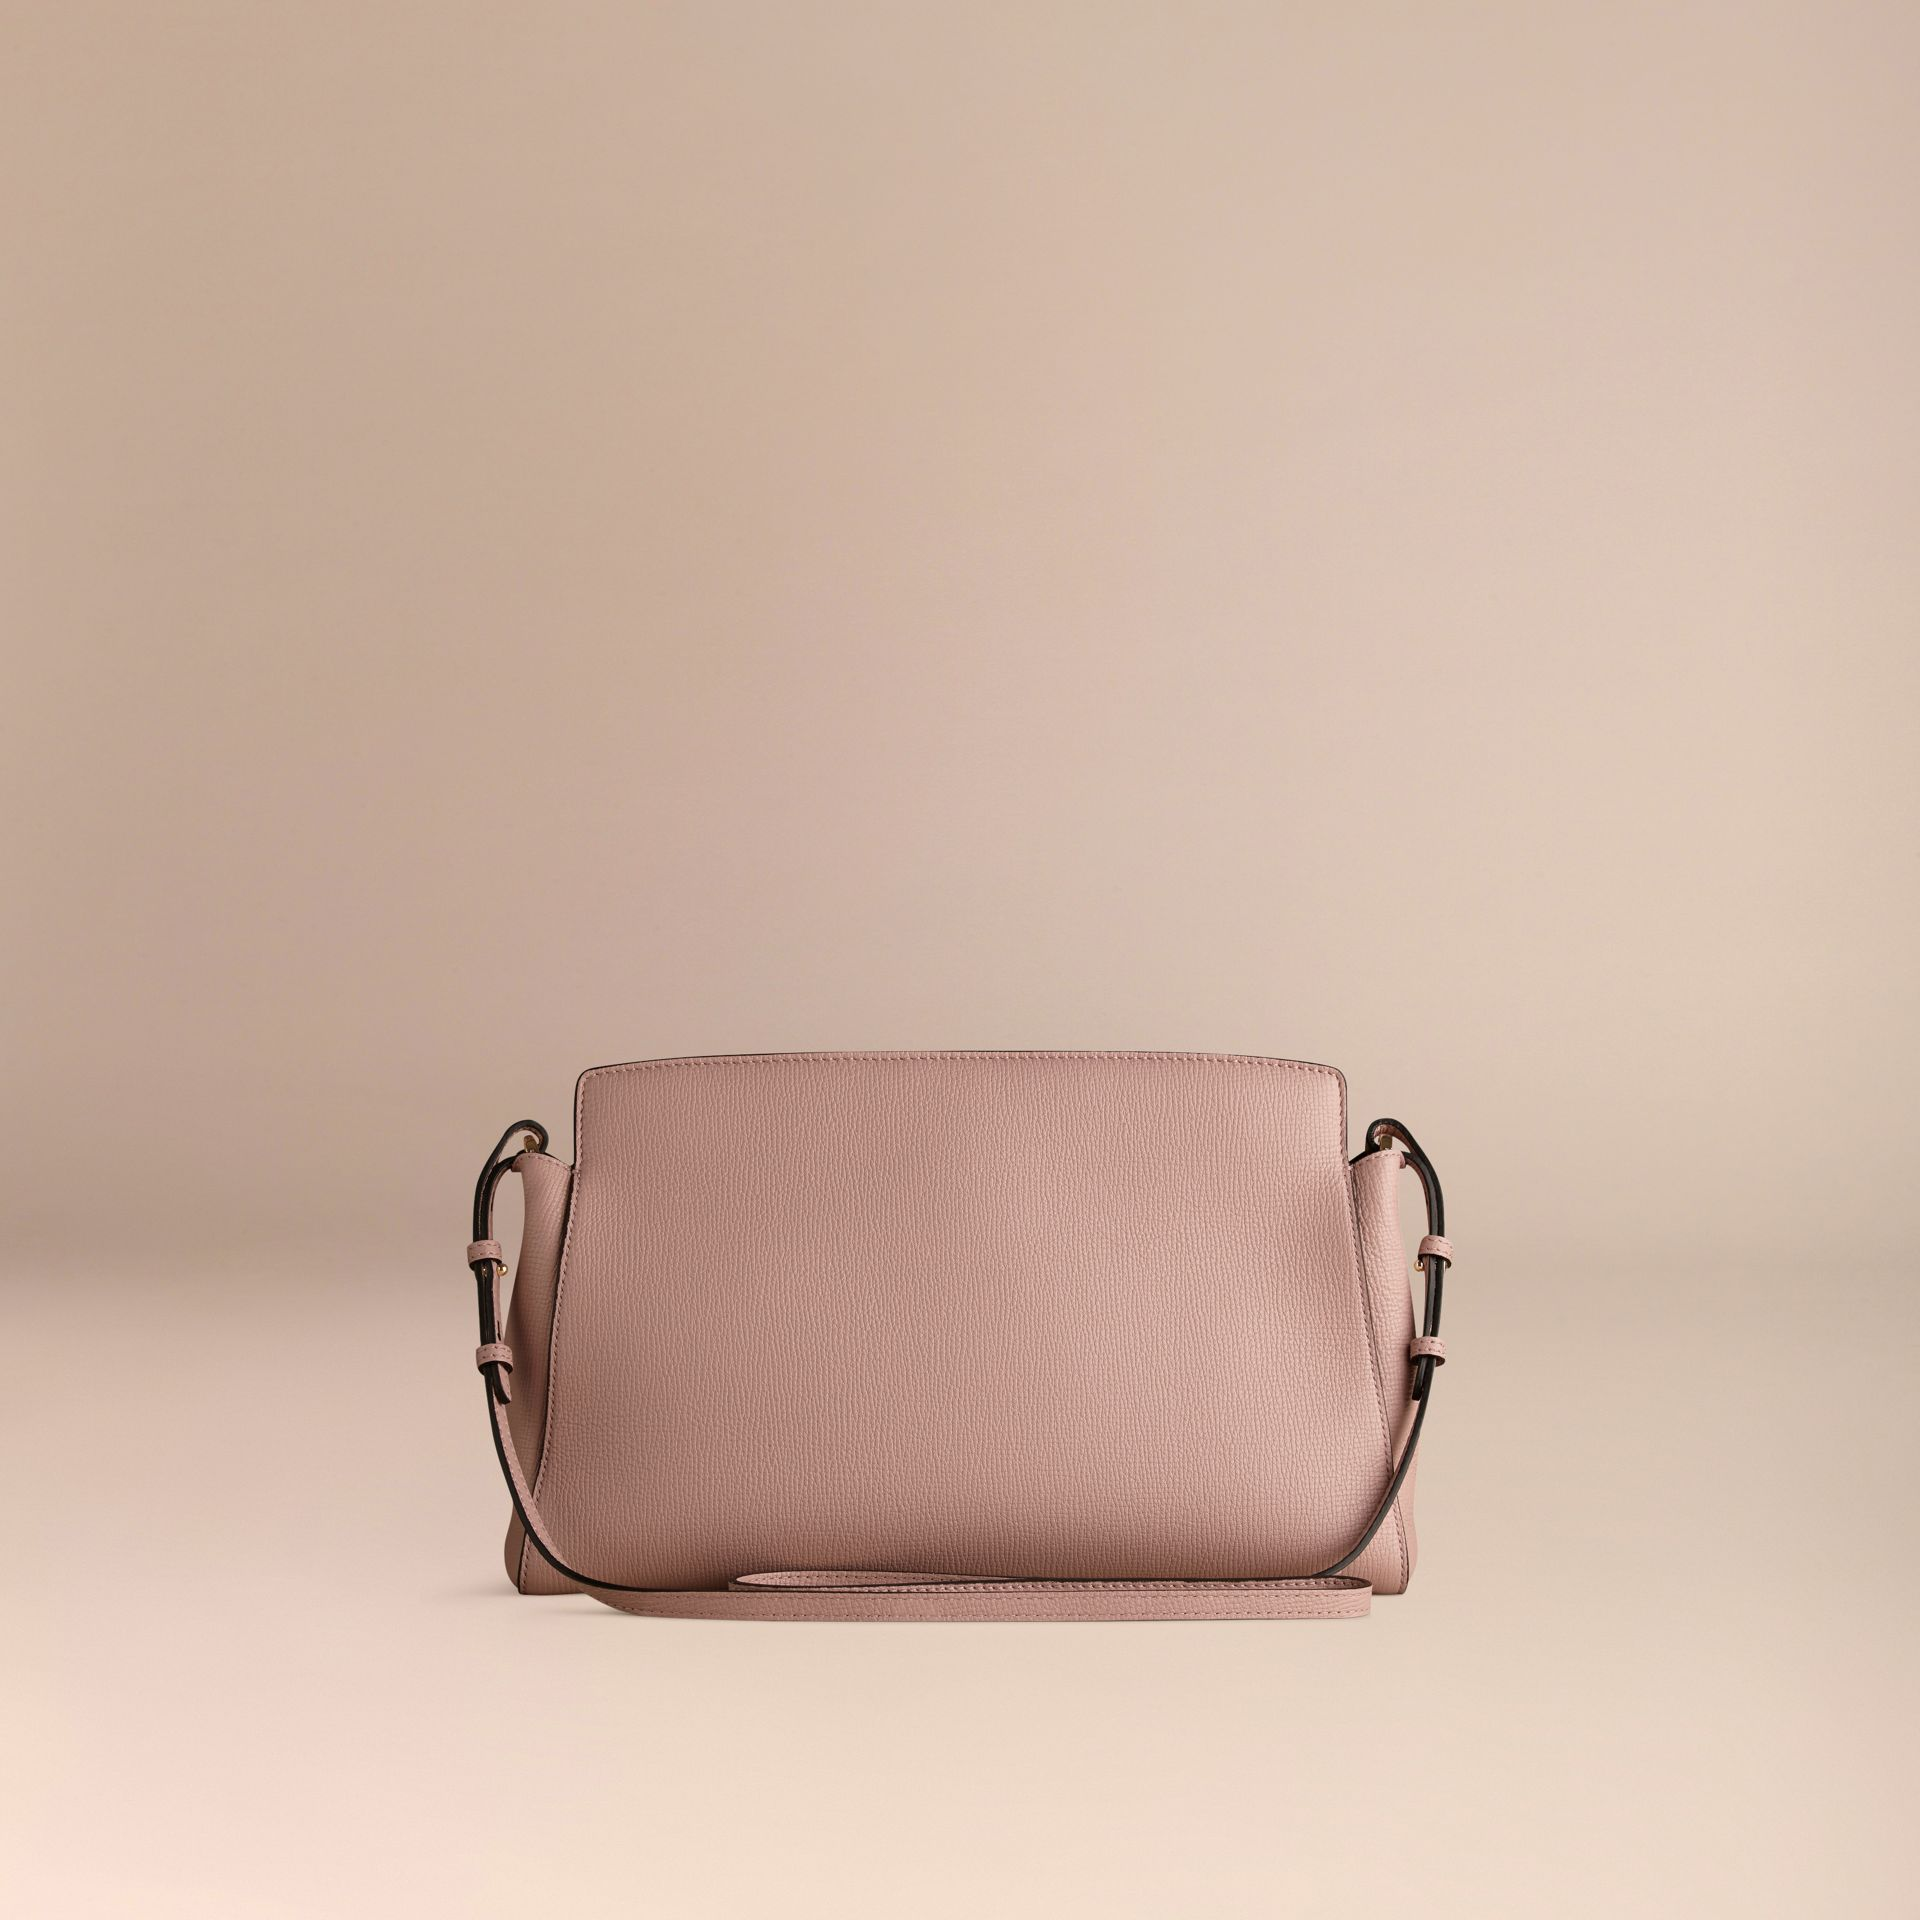 Pale orchid The Saddle Clutch in Grainy Bonded Leather Pale Orchid - gallery image 4